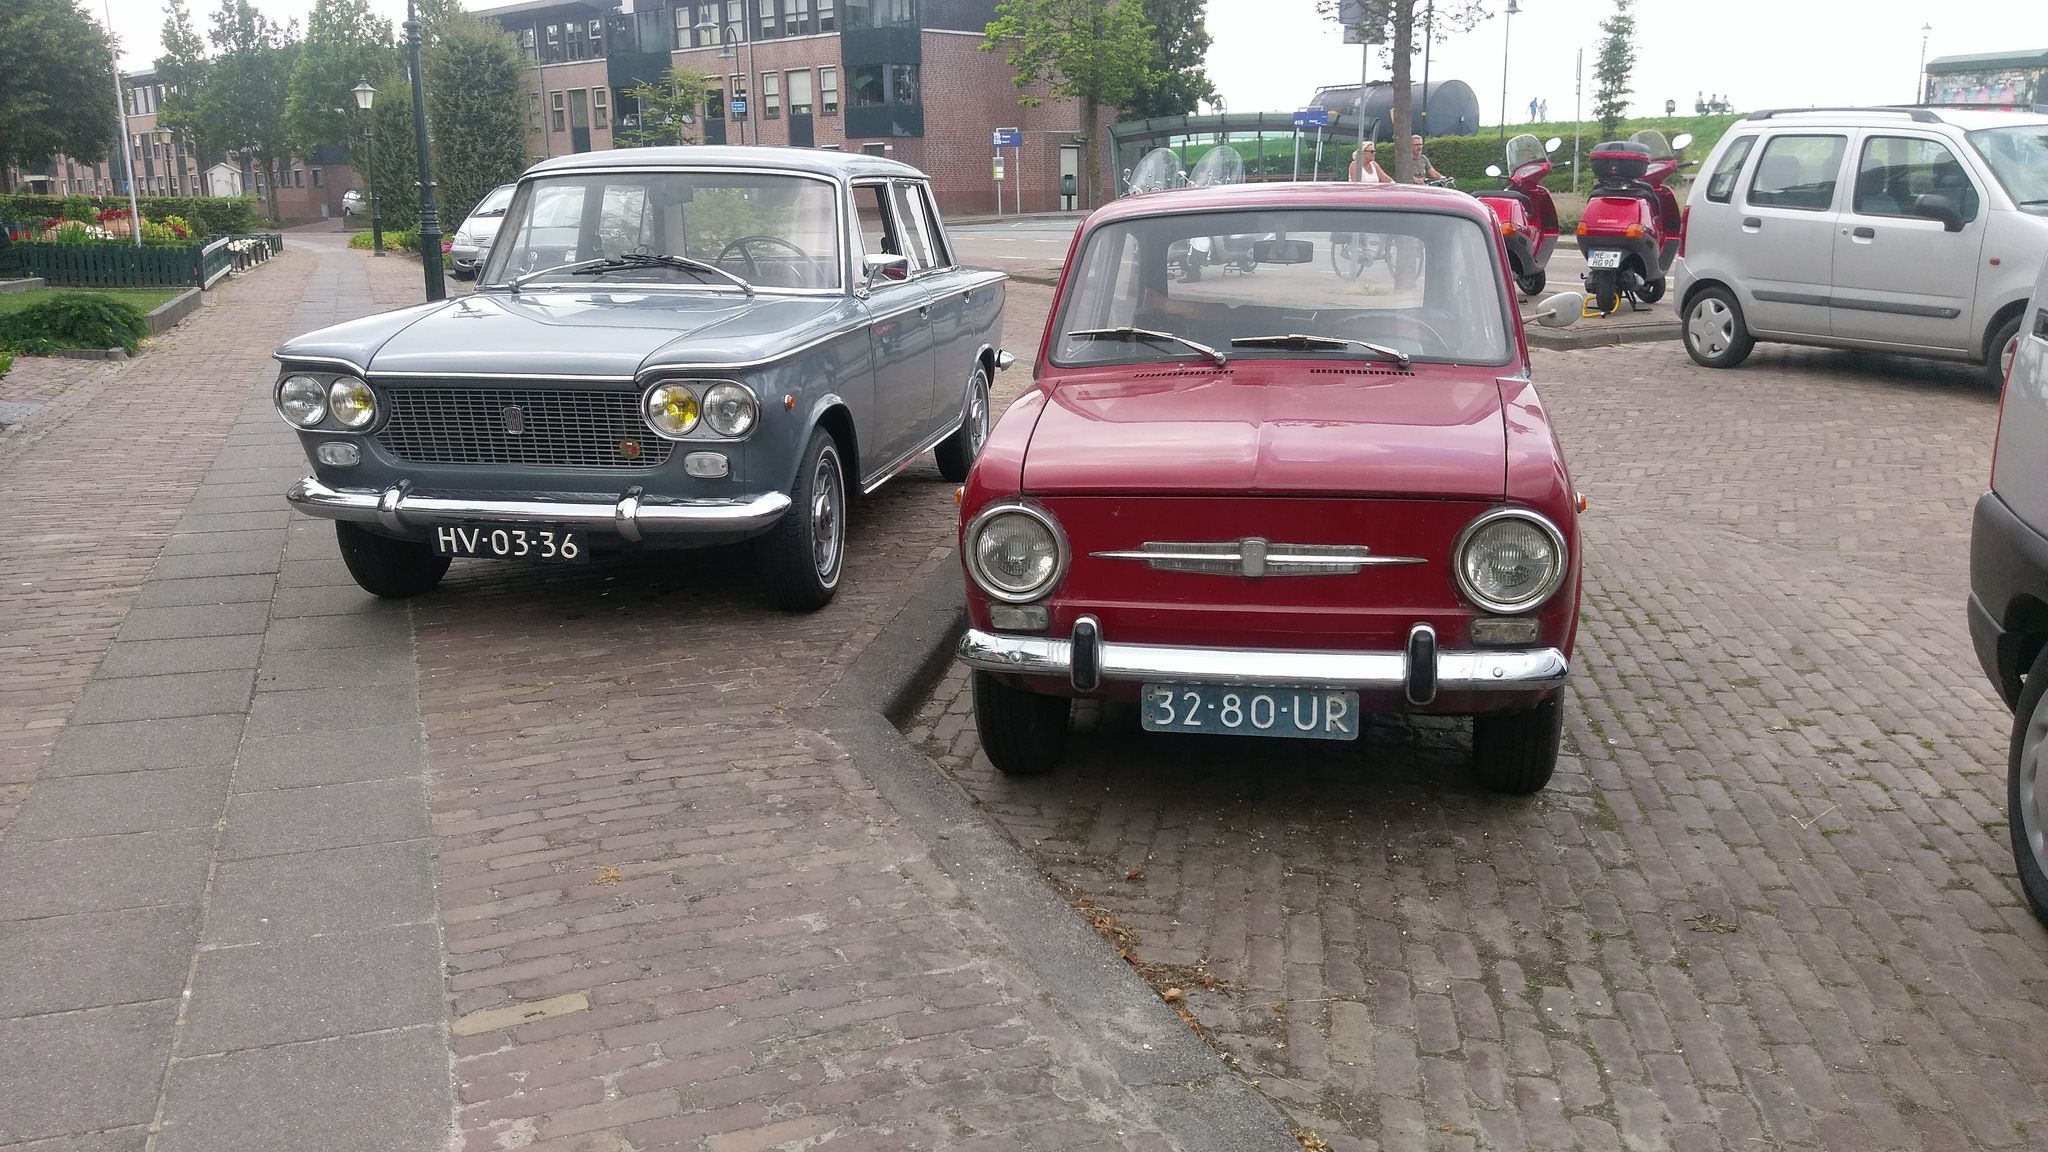 Fiat 1500 1964 And Fiat 850d 1972 Hv 03 36 And 32 80 Ur